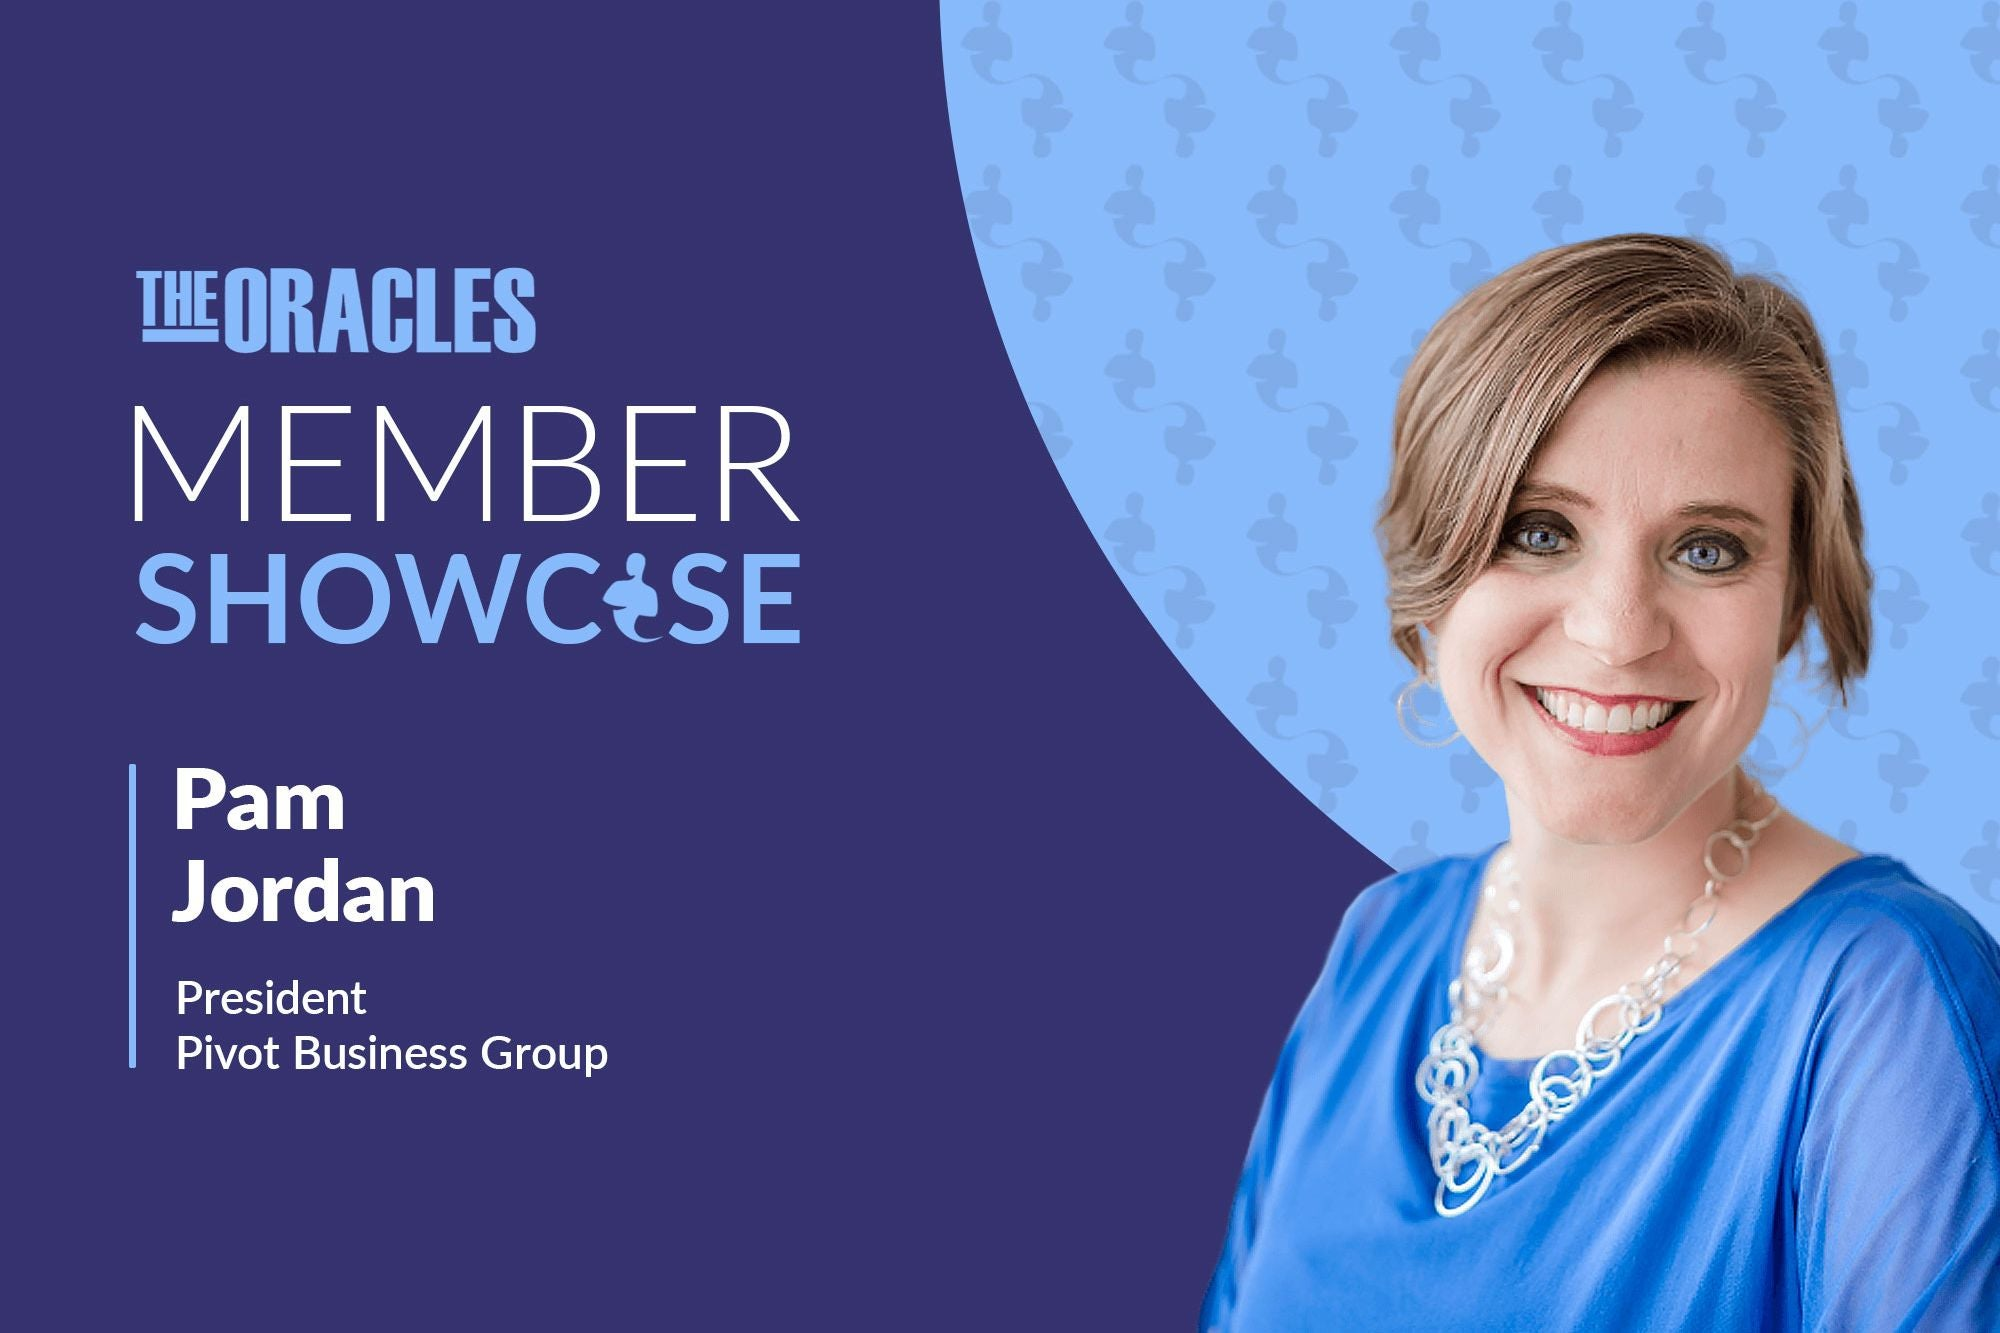 How a Sinking Ship and an Airplane Inspired Pam Jordan to Leave the Corporate World and Start Her Own Business